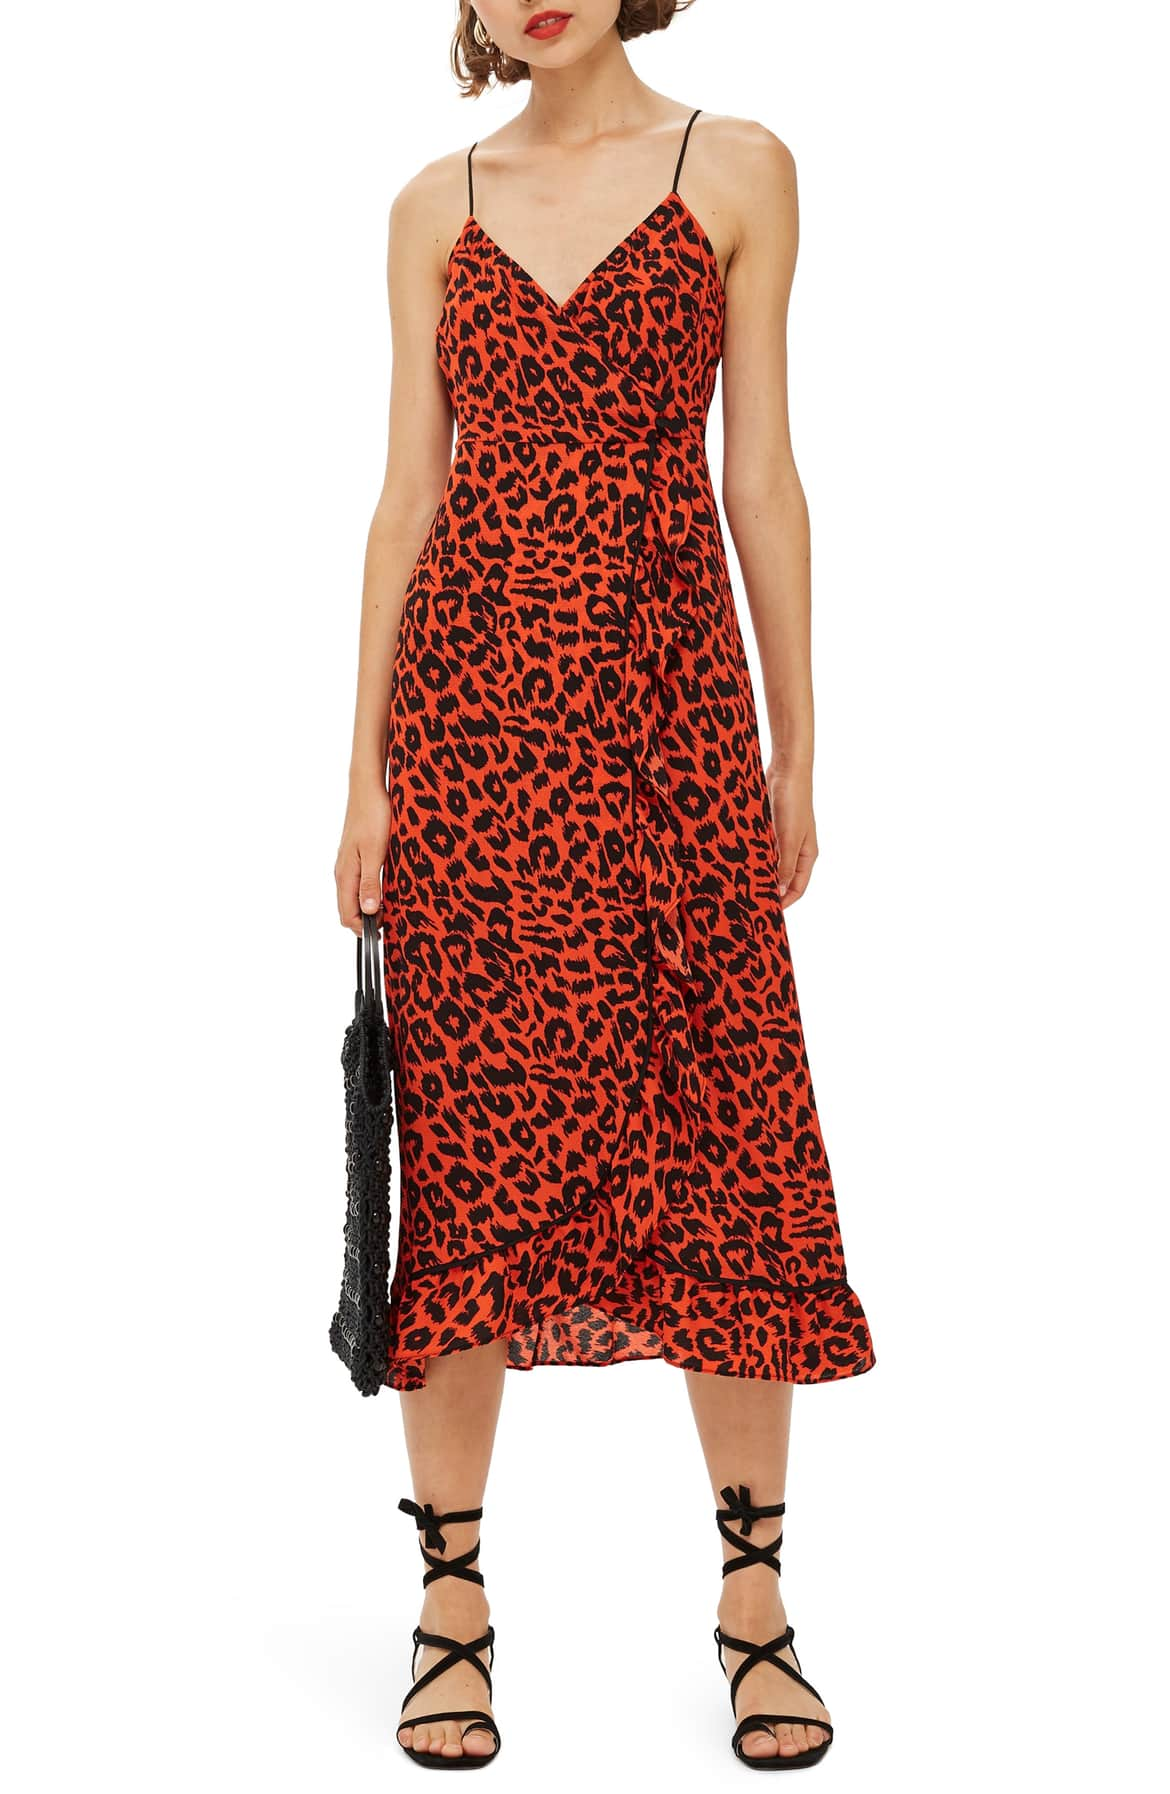 <p>Chic animal print emboldens a breezy slipdress styled with slinky straps and light ruffles fluttering down the front. $75. (Image: Nordstrom){&amp;nbsp;}</p><p></p>